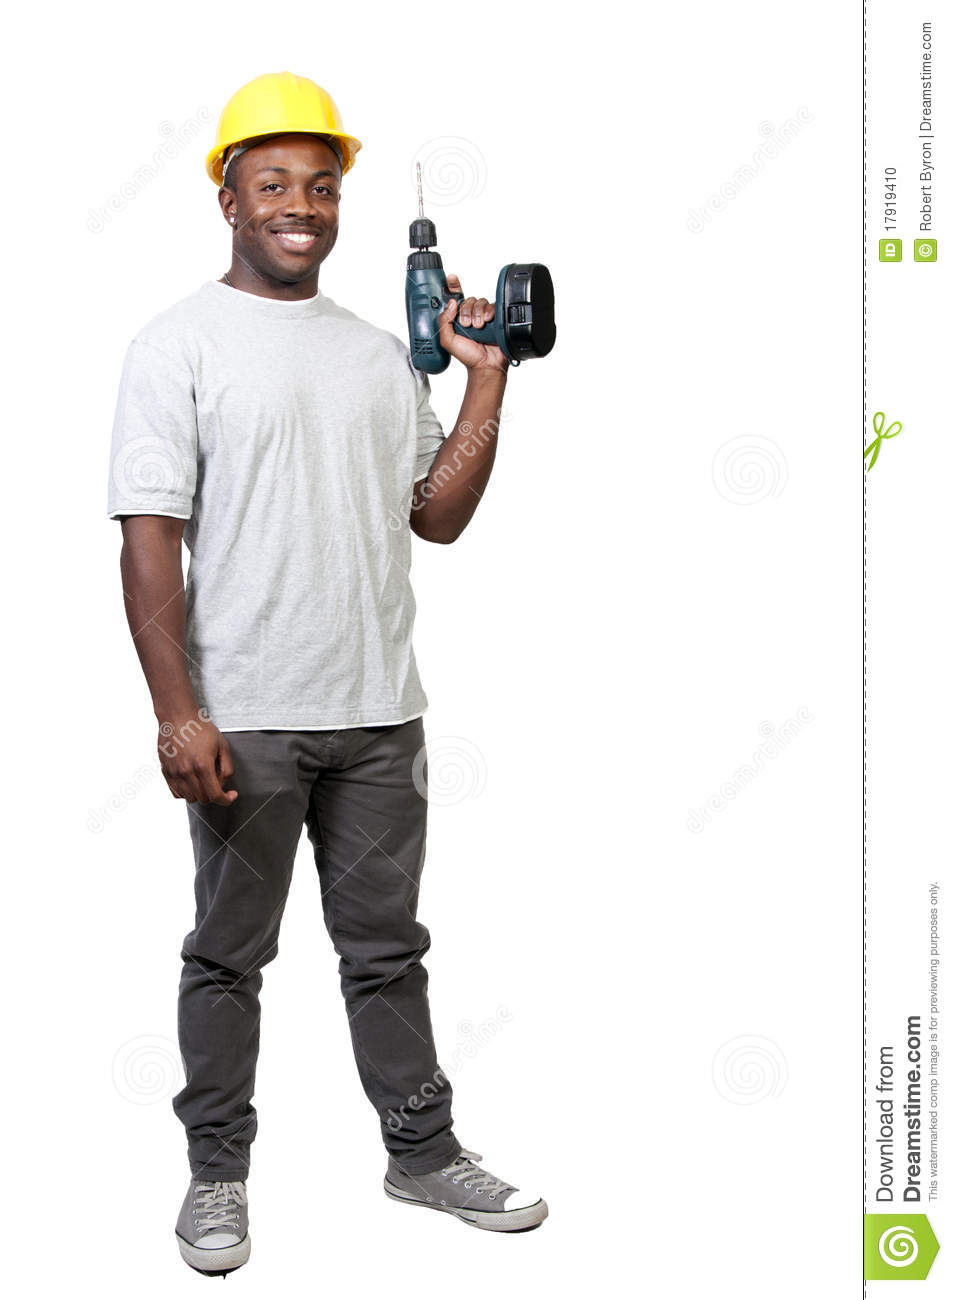 Construction Worker With Drill Stock Photo - Image: 17919410  Construction Wo...